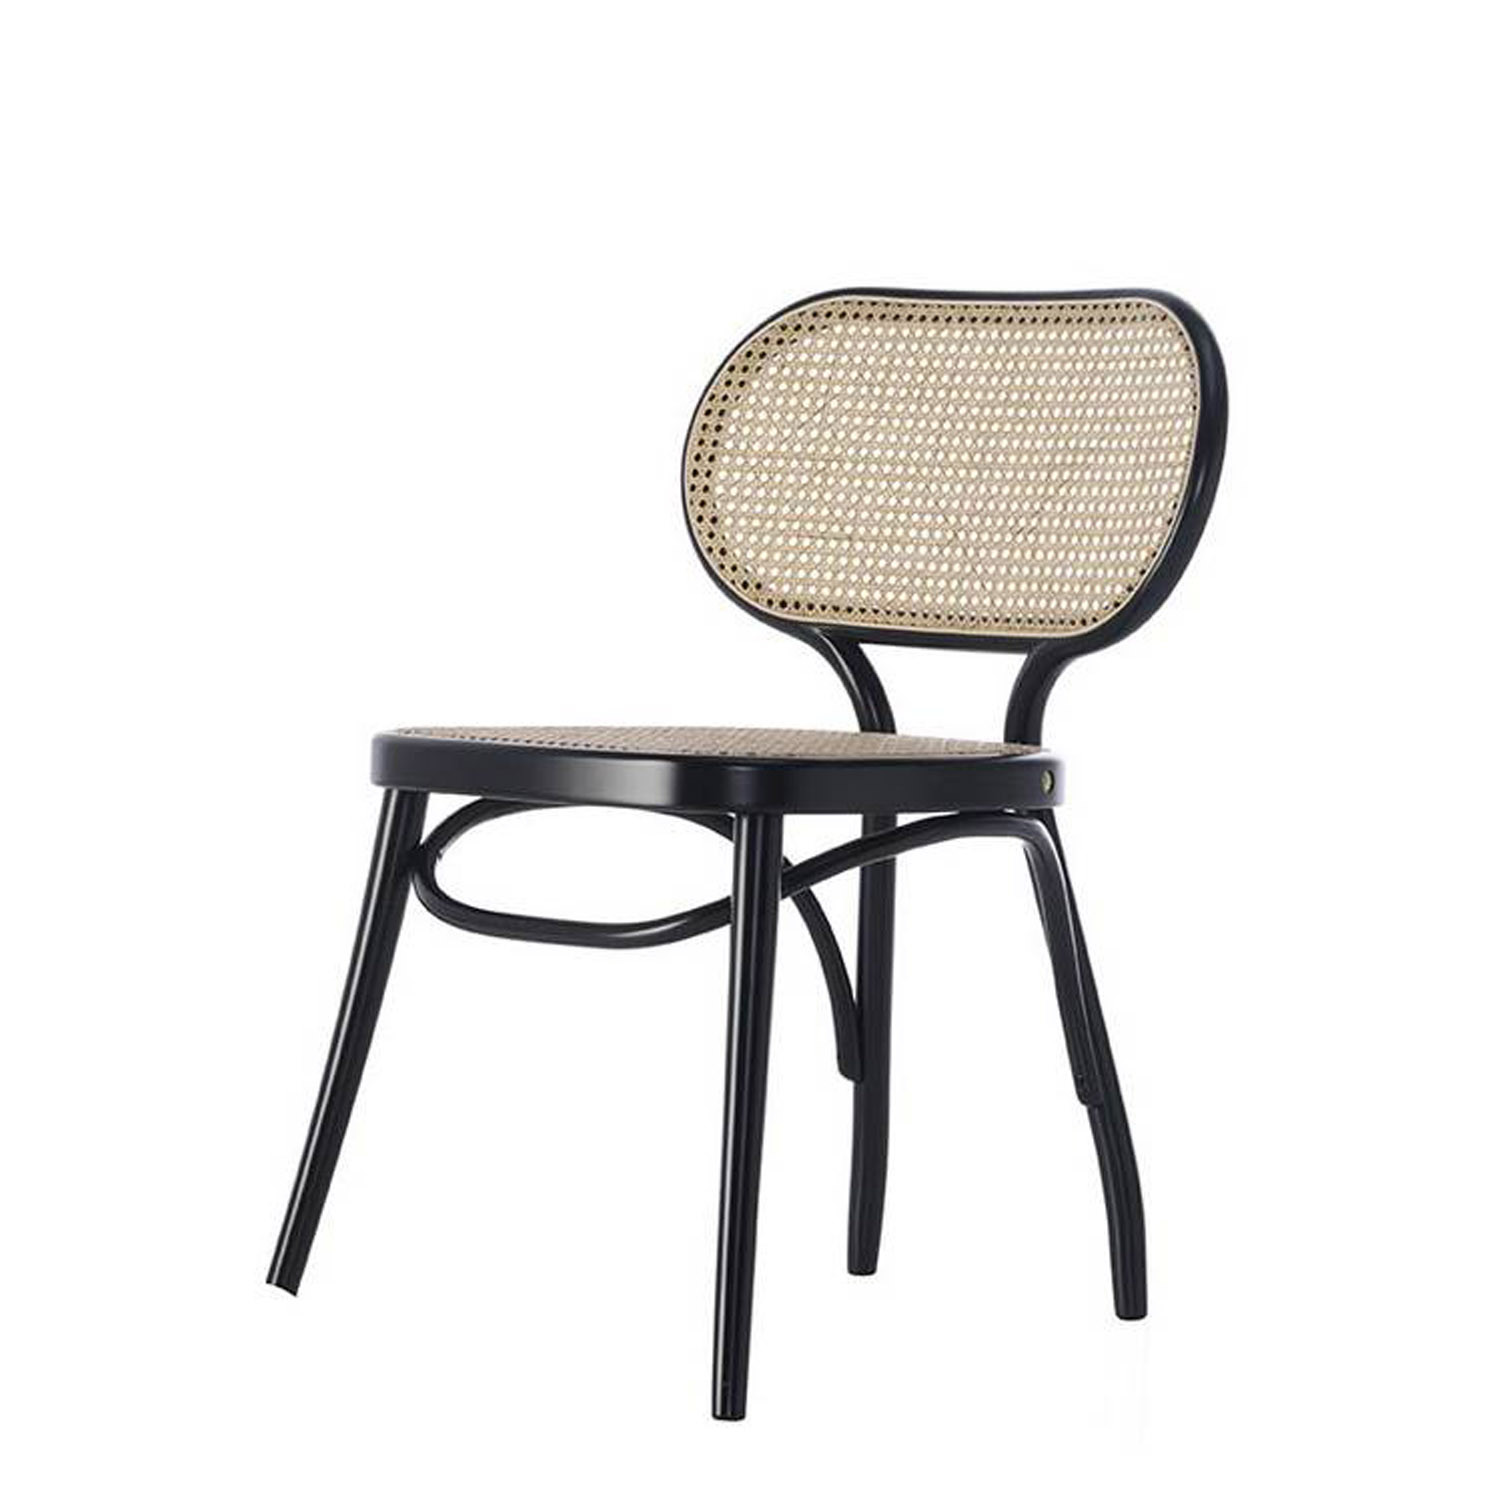 Bodystuhl Dining Chair from GTV